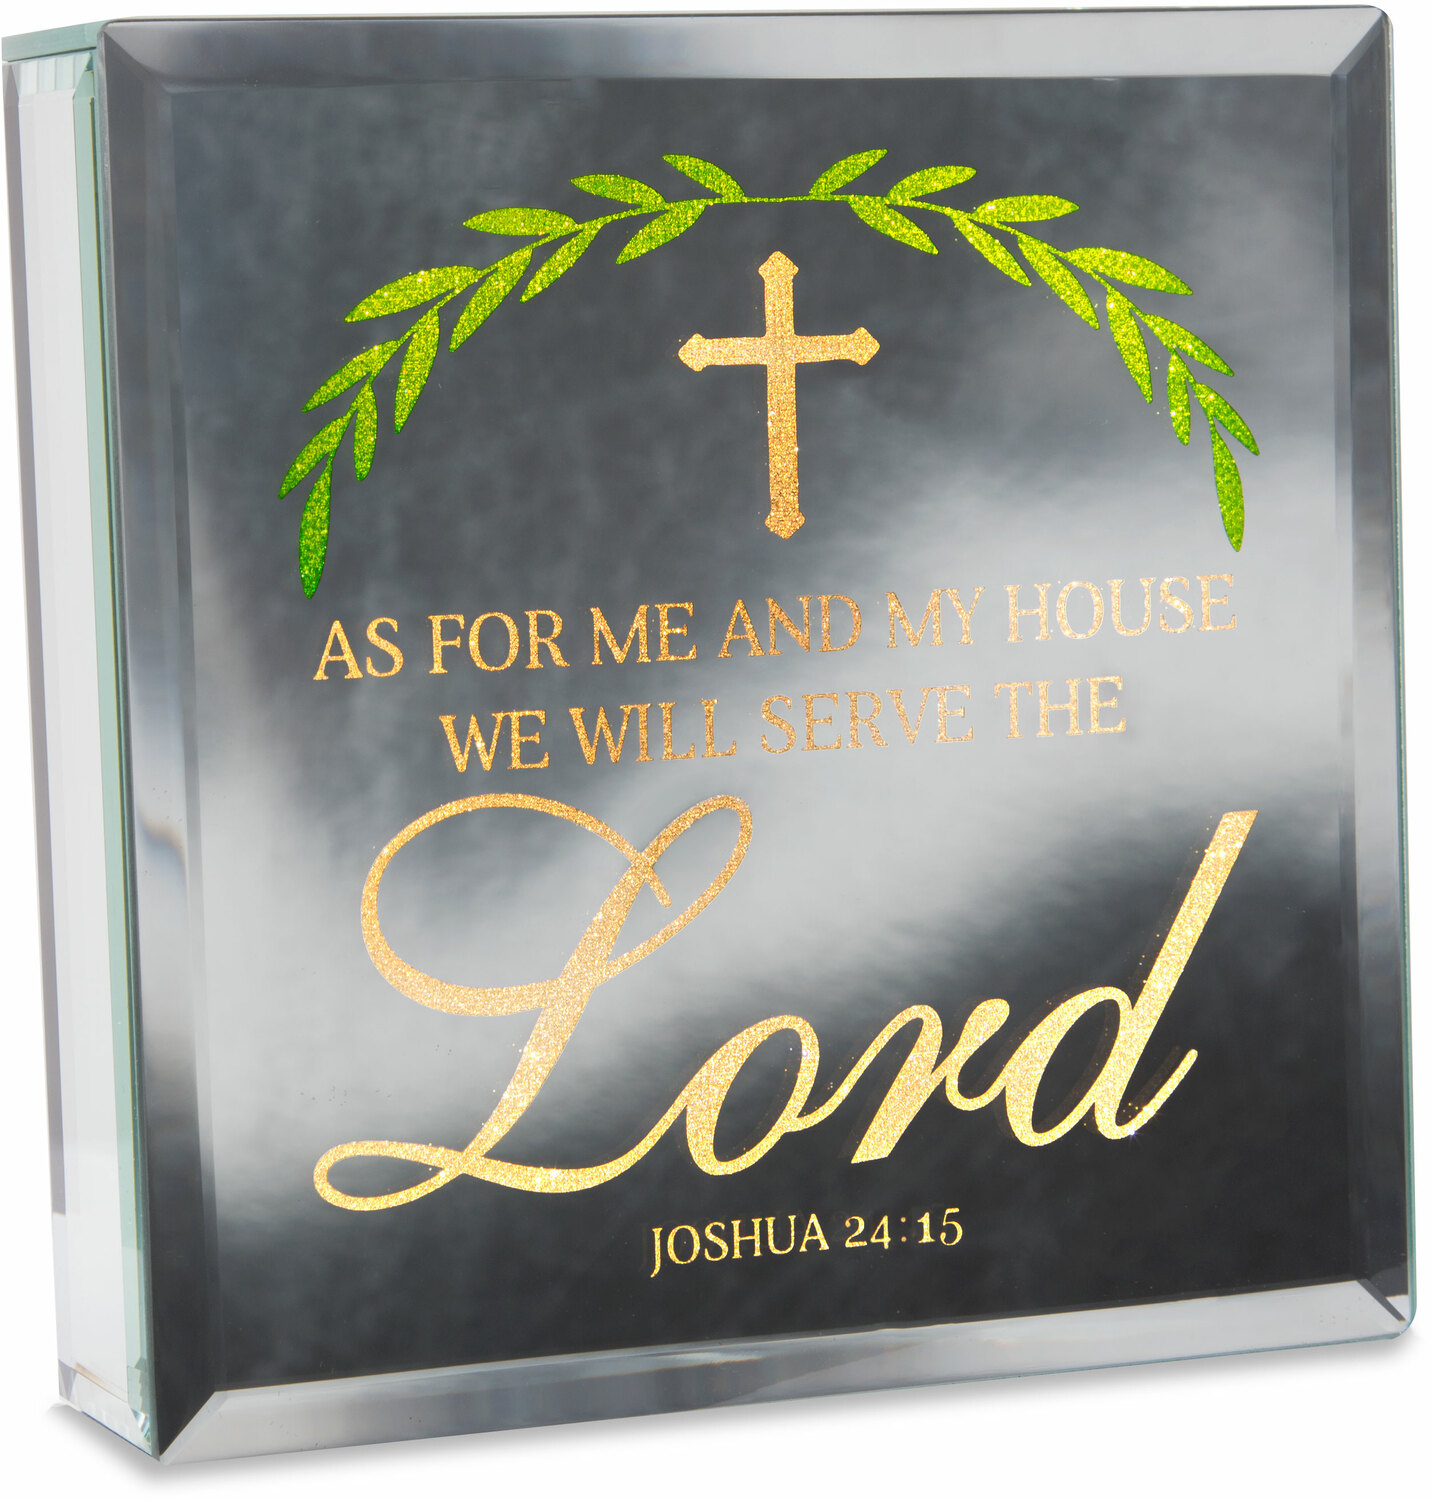 "Lord by Reflections of You - Lord - 6"" Lit-Mirrored Plaque"